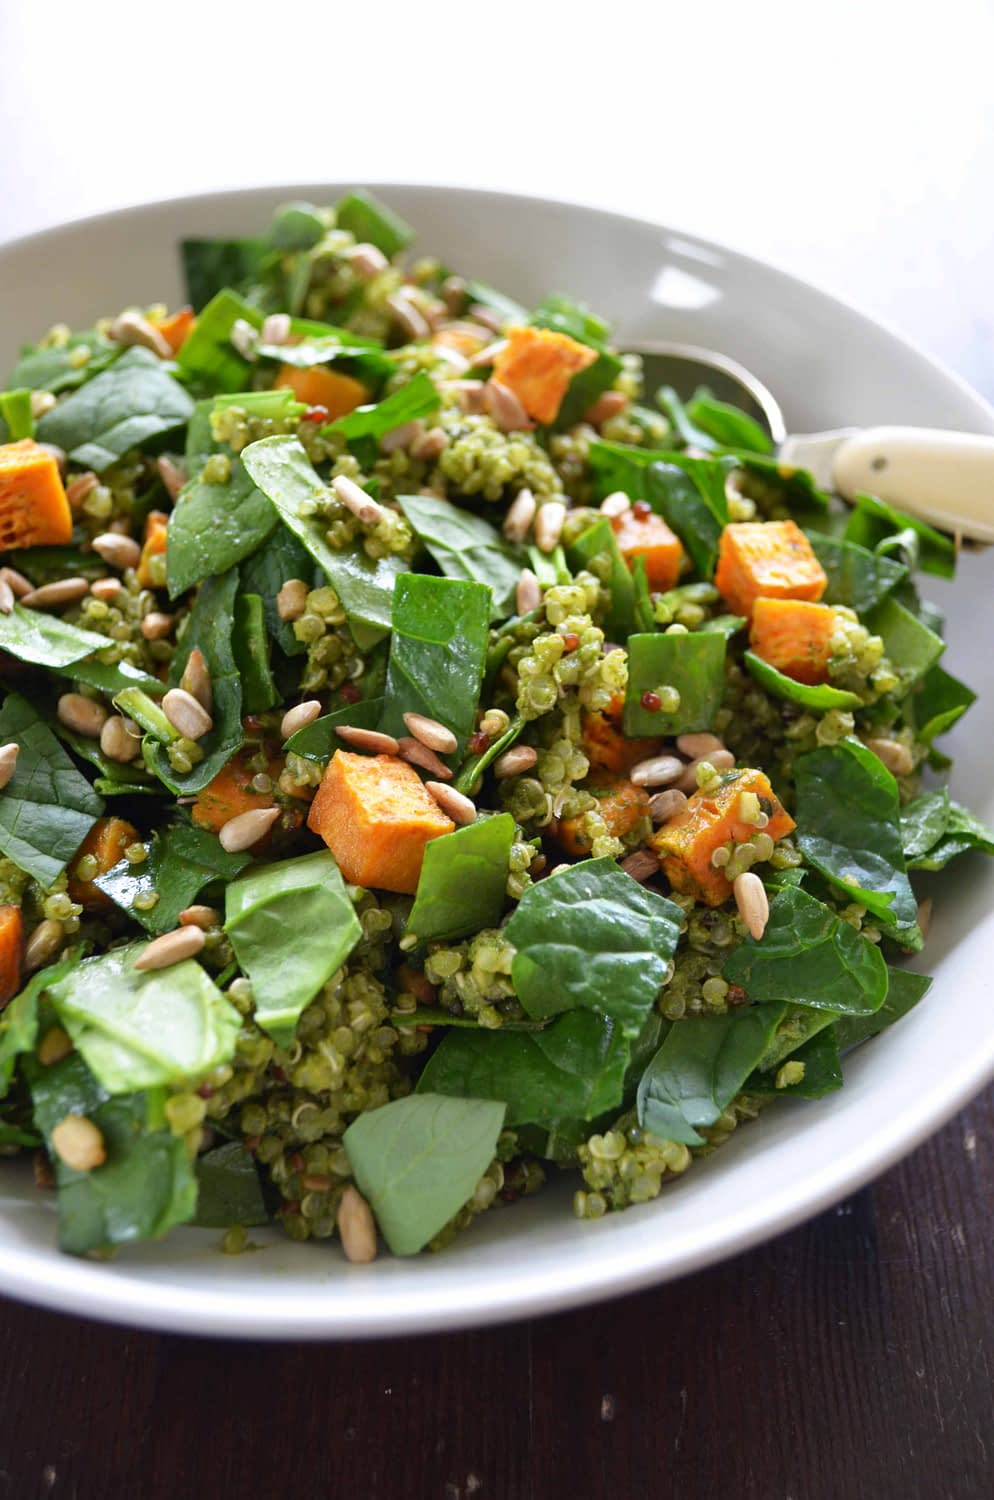 Quinoa Salad with a Creamy Pesto Dressing, Spinach and Sweet Potato